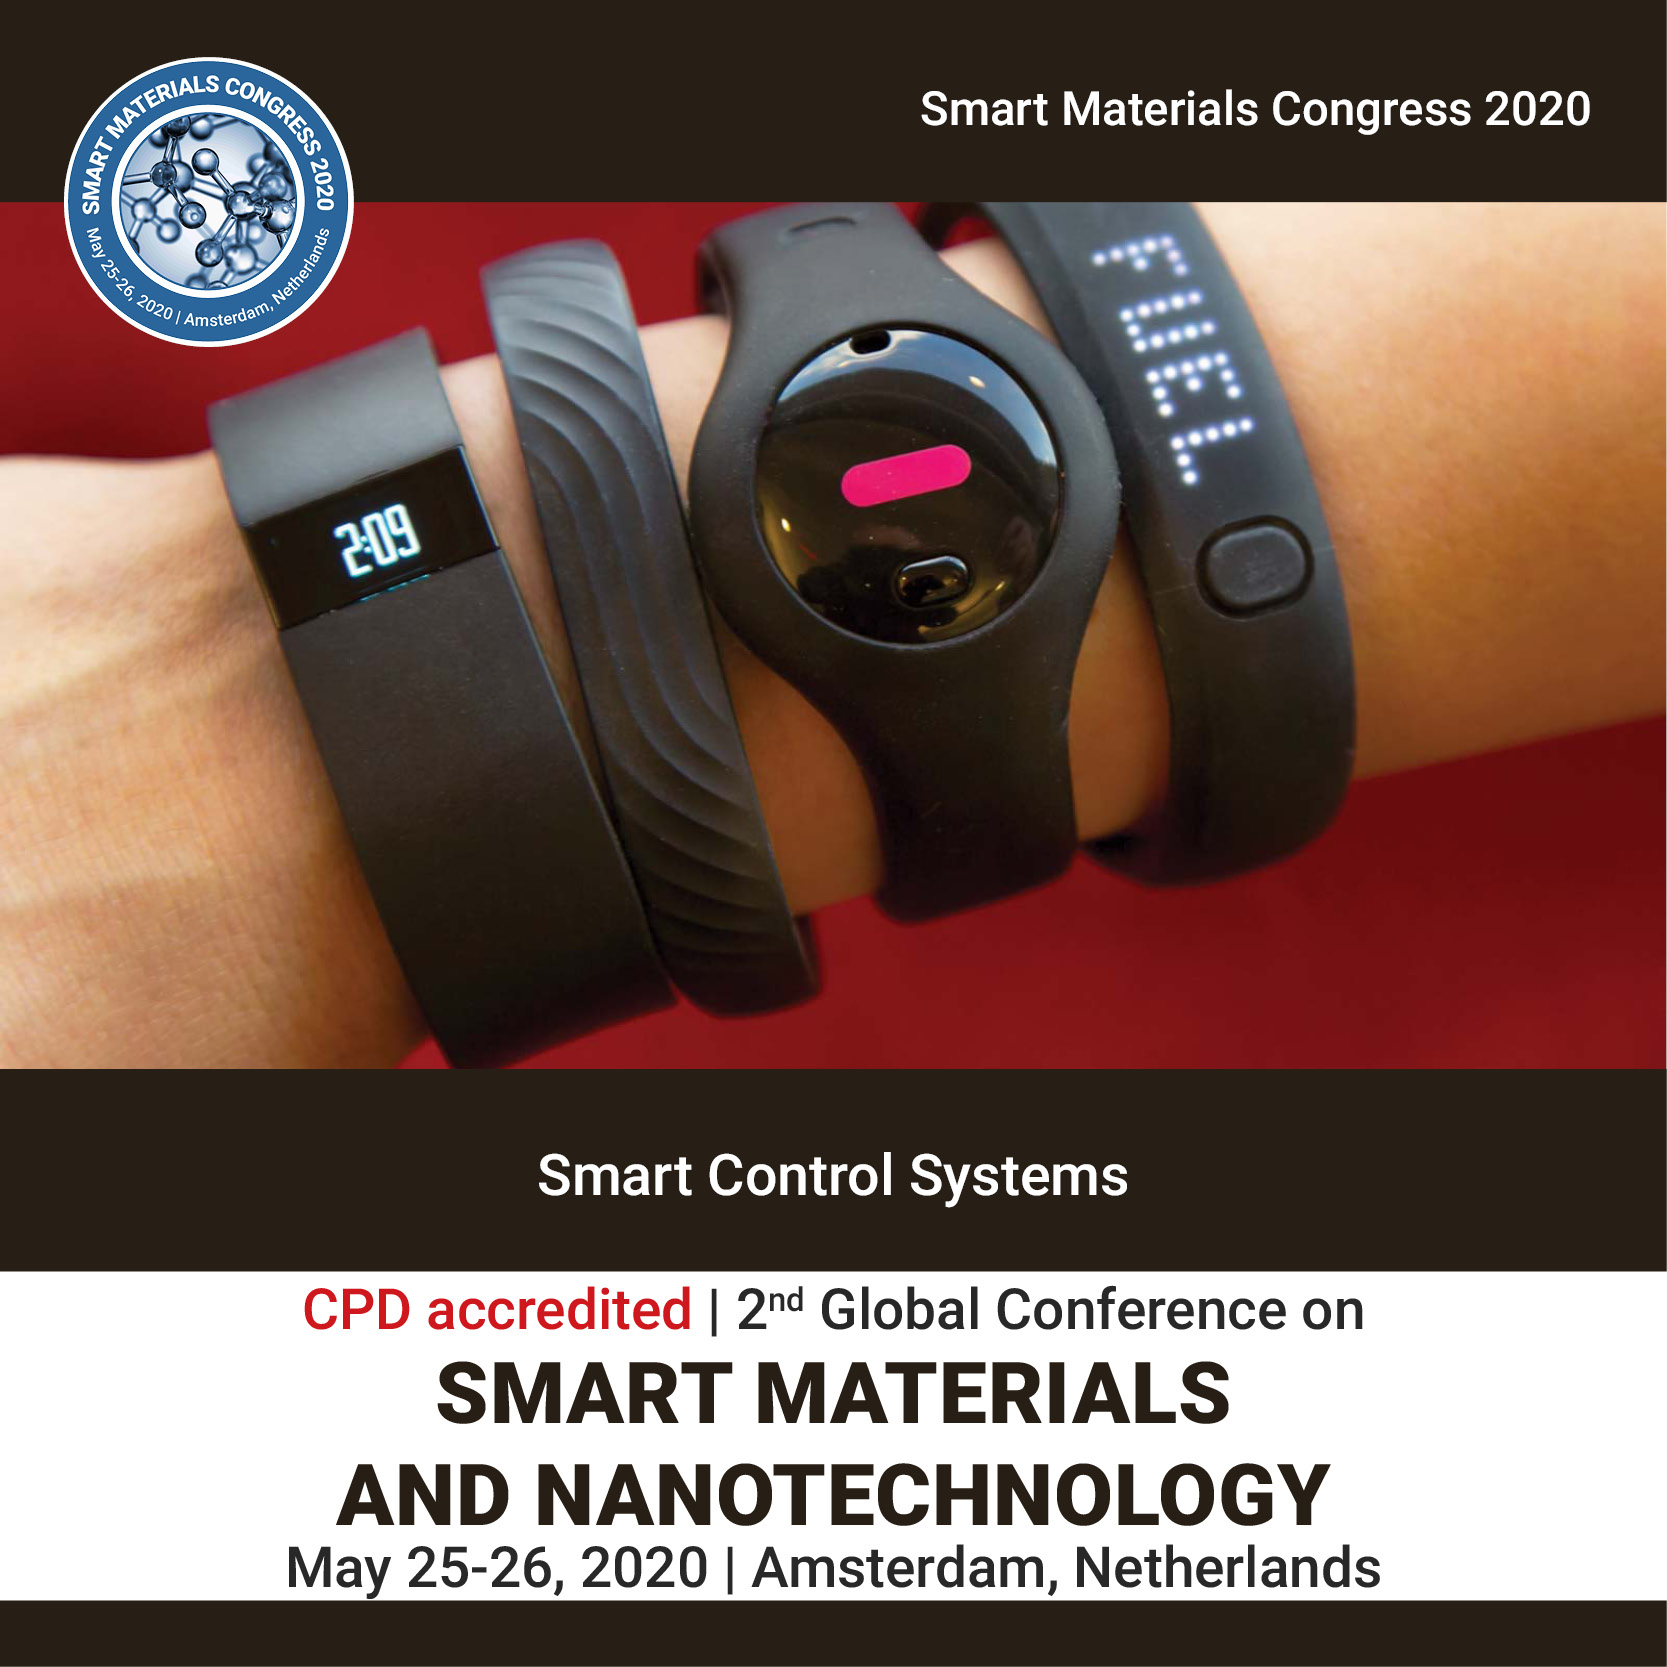 Smart Control Systems Photo